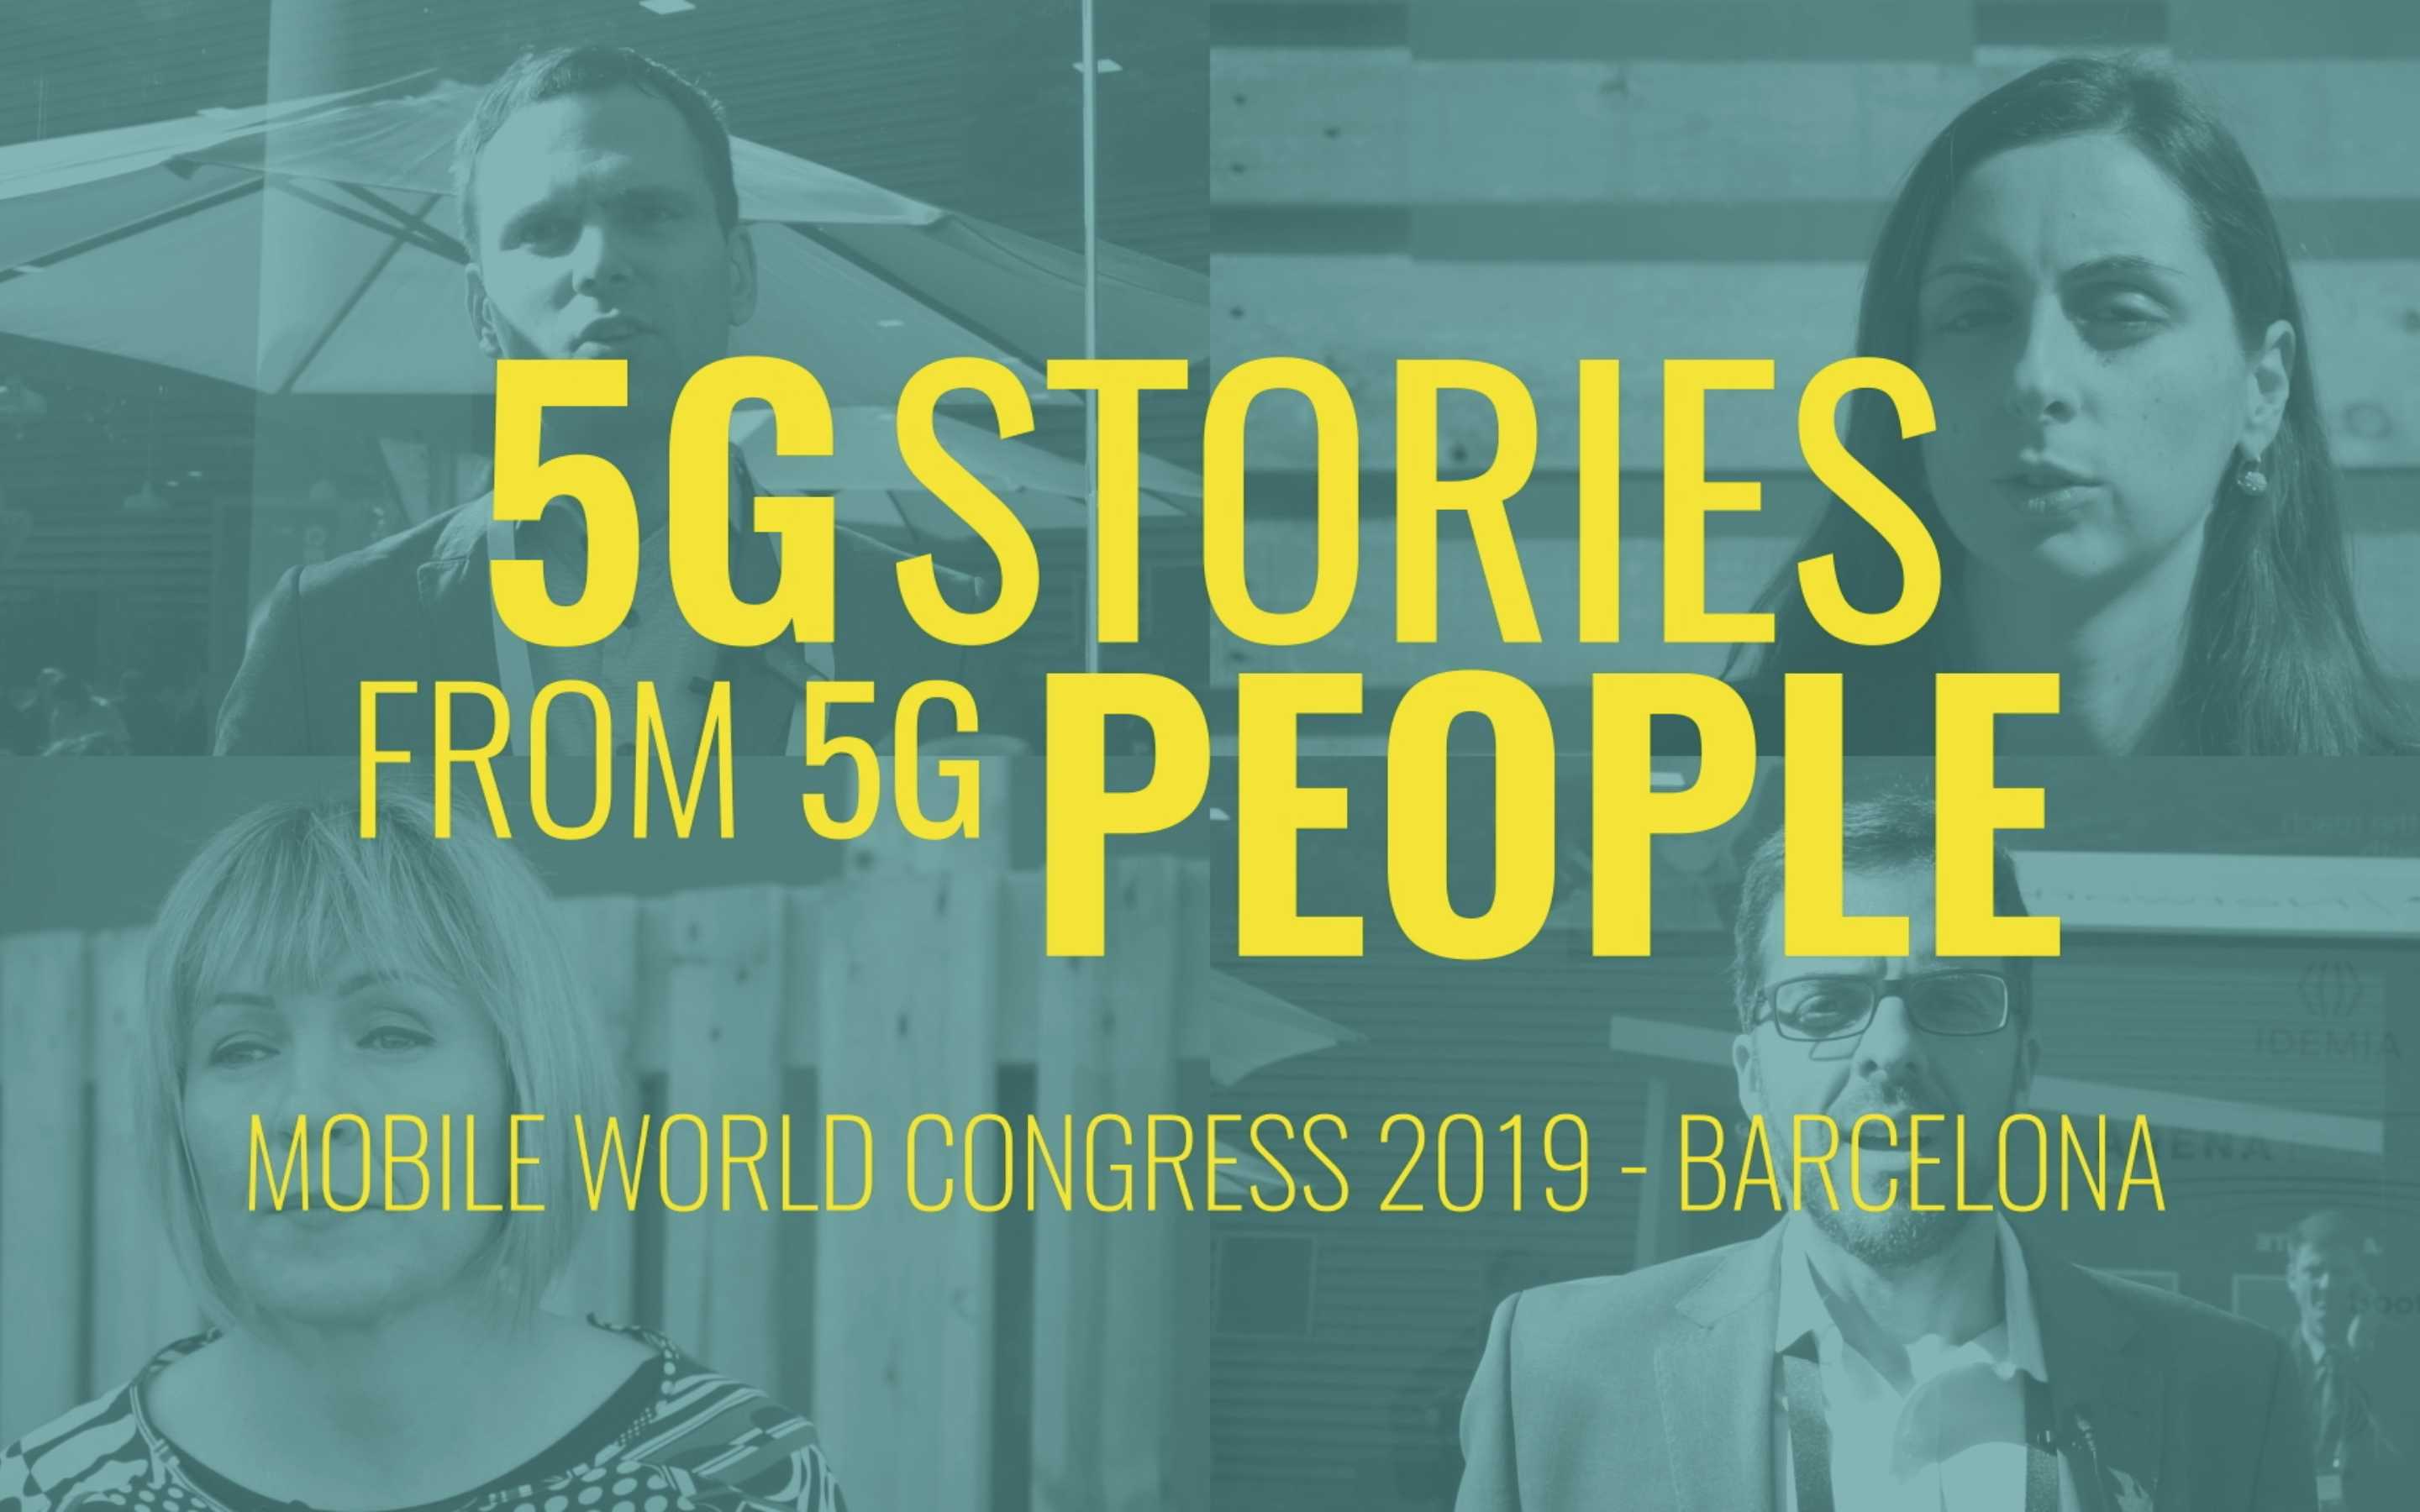 Screenshot from the Martel video: 5G stories from 5G people